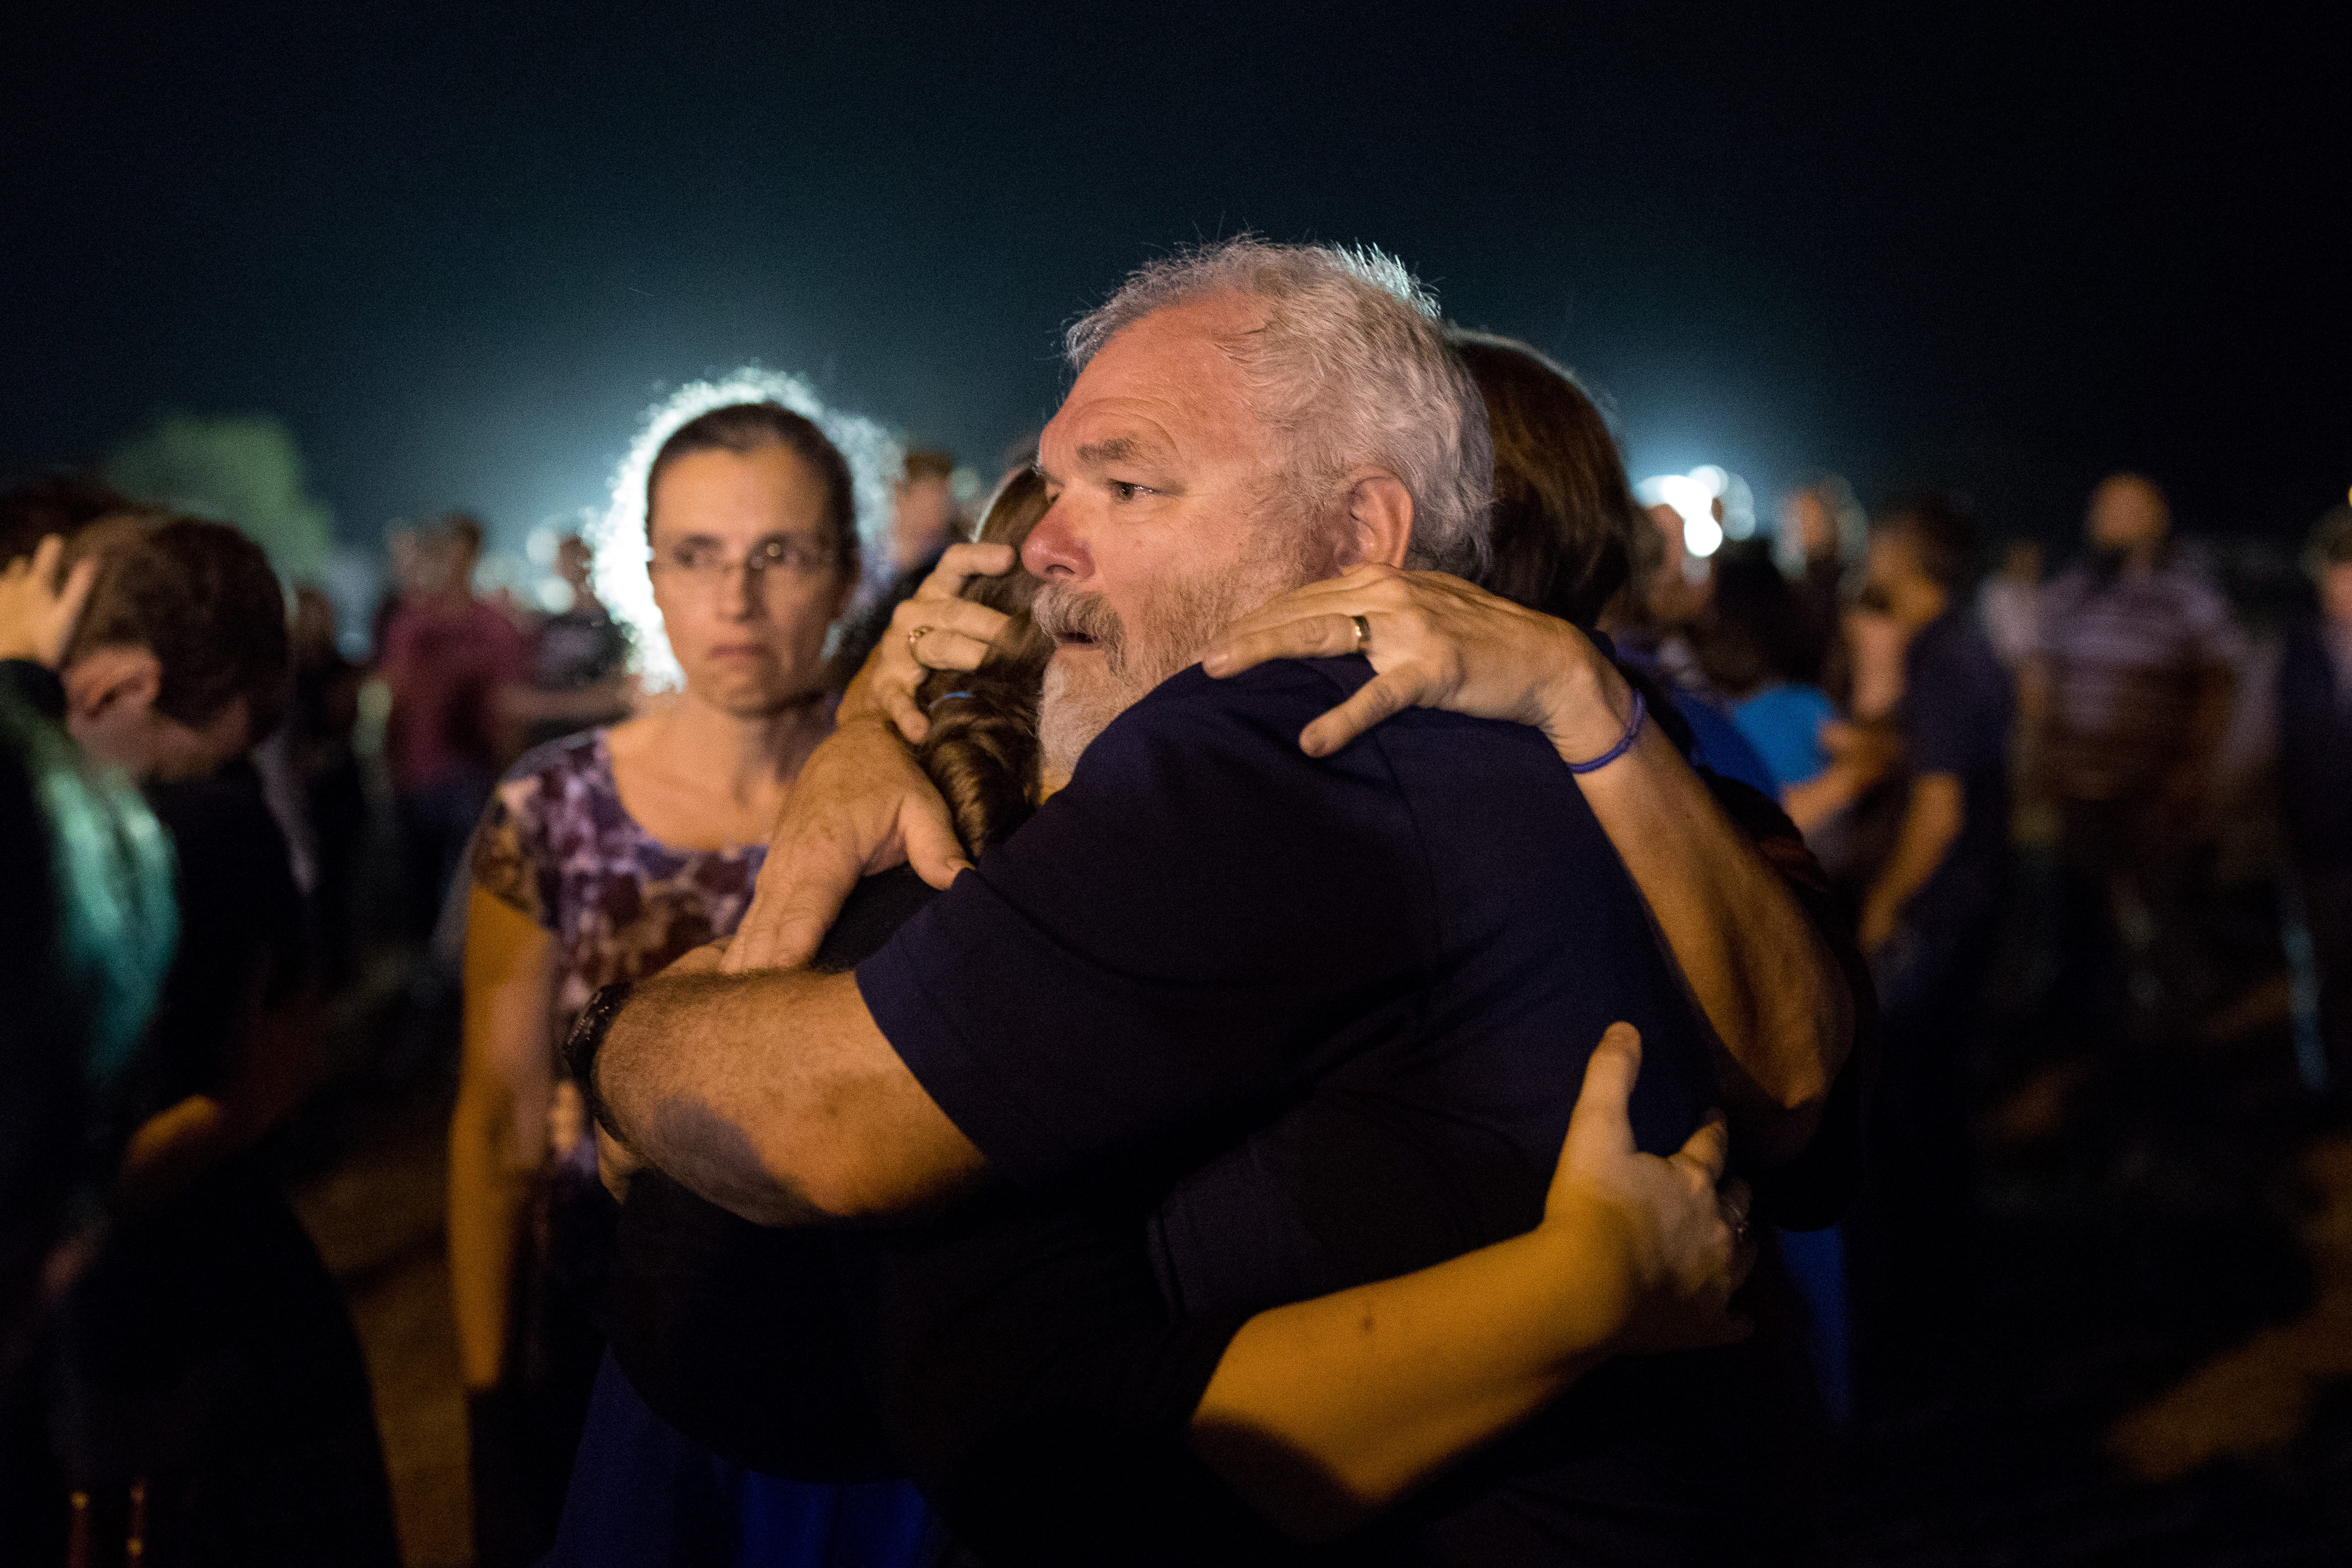 Stephen Willeford is hailed as a hero for helping to bring down the shooter who killed 25 people at First Baptist Church in Sutherland Springs.